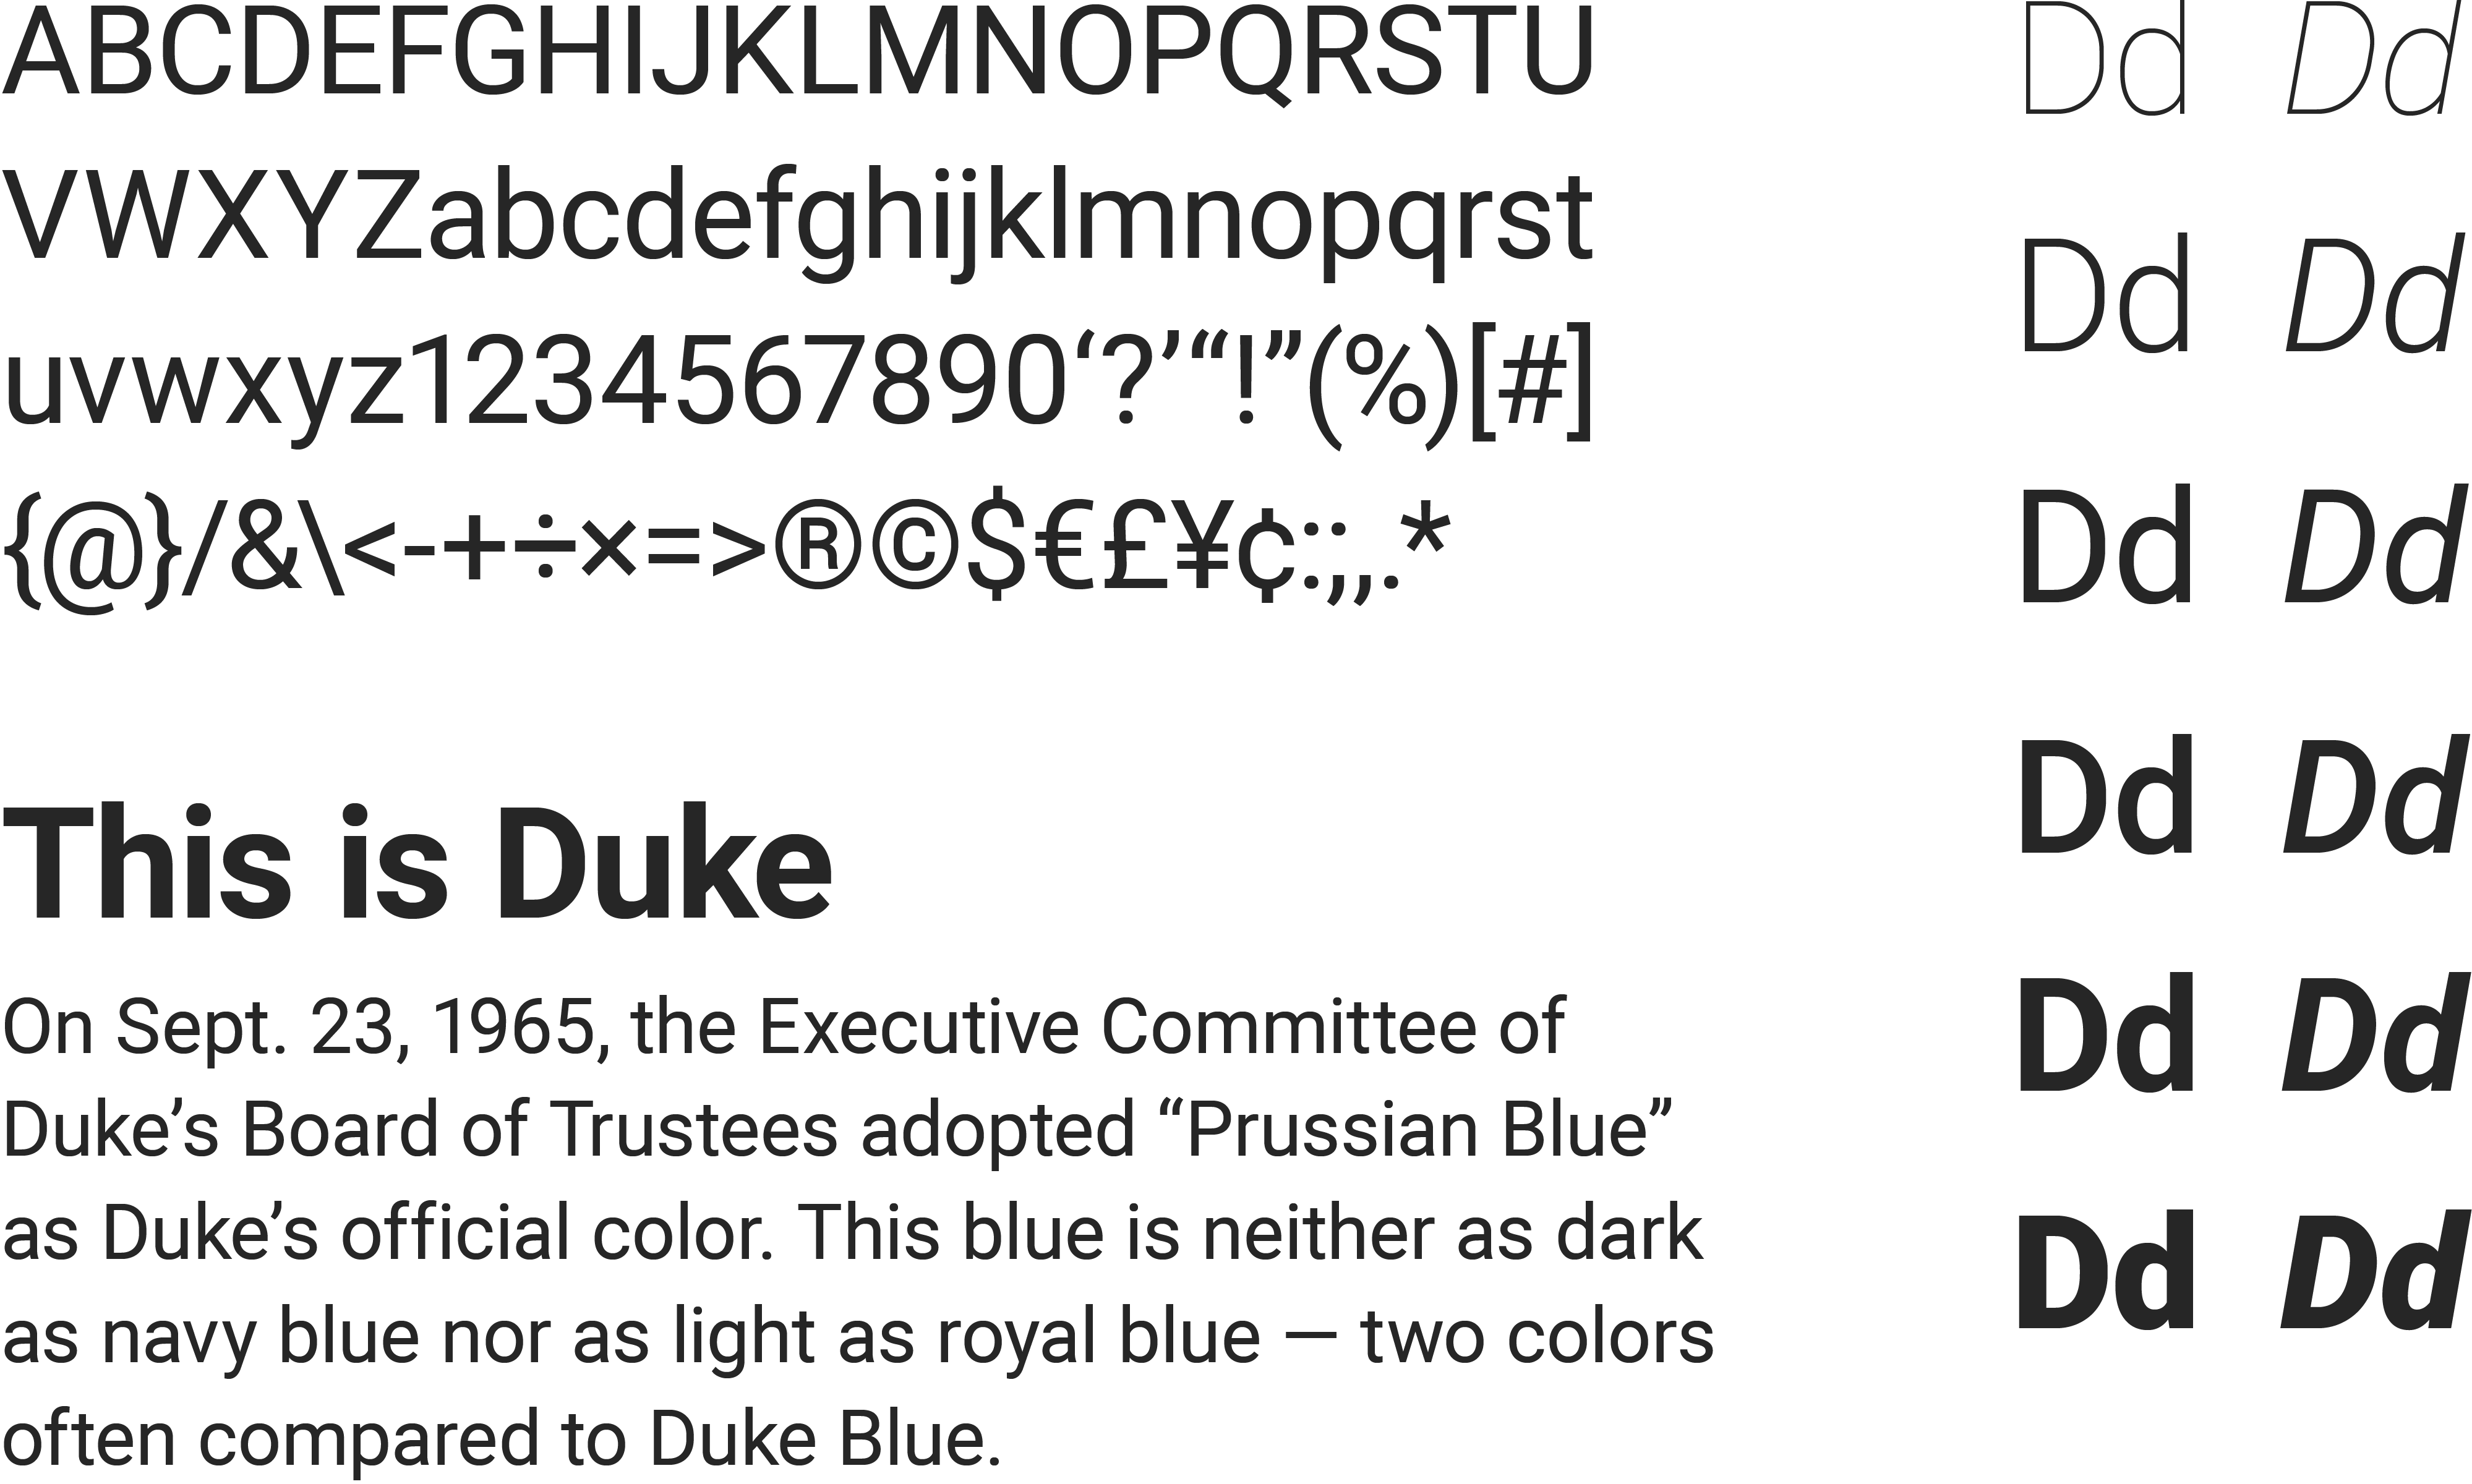 A specimen of the Roboto, a sans-serif typeface. Included are a list of English characters, the font weights & styles and a sample paragraph of text rendered in the typeface.